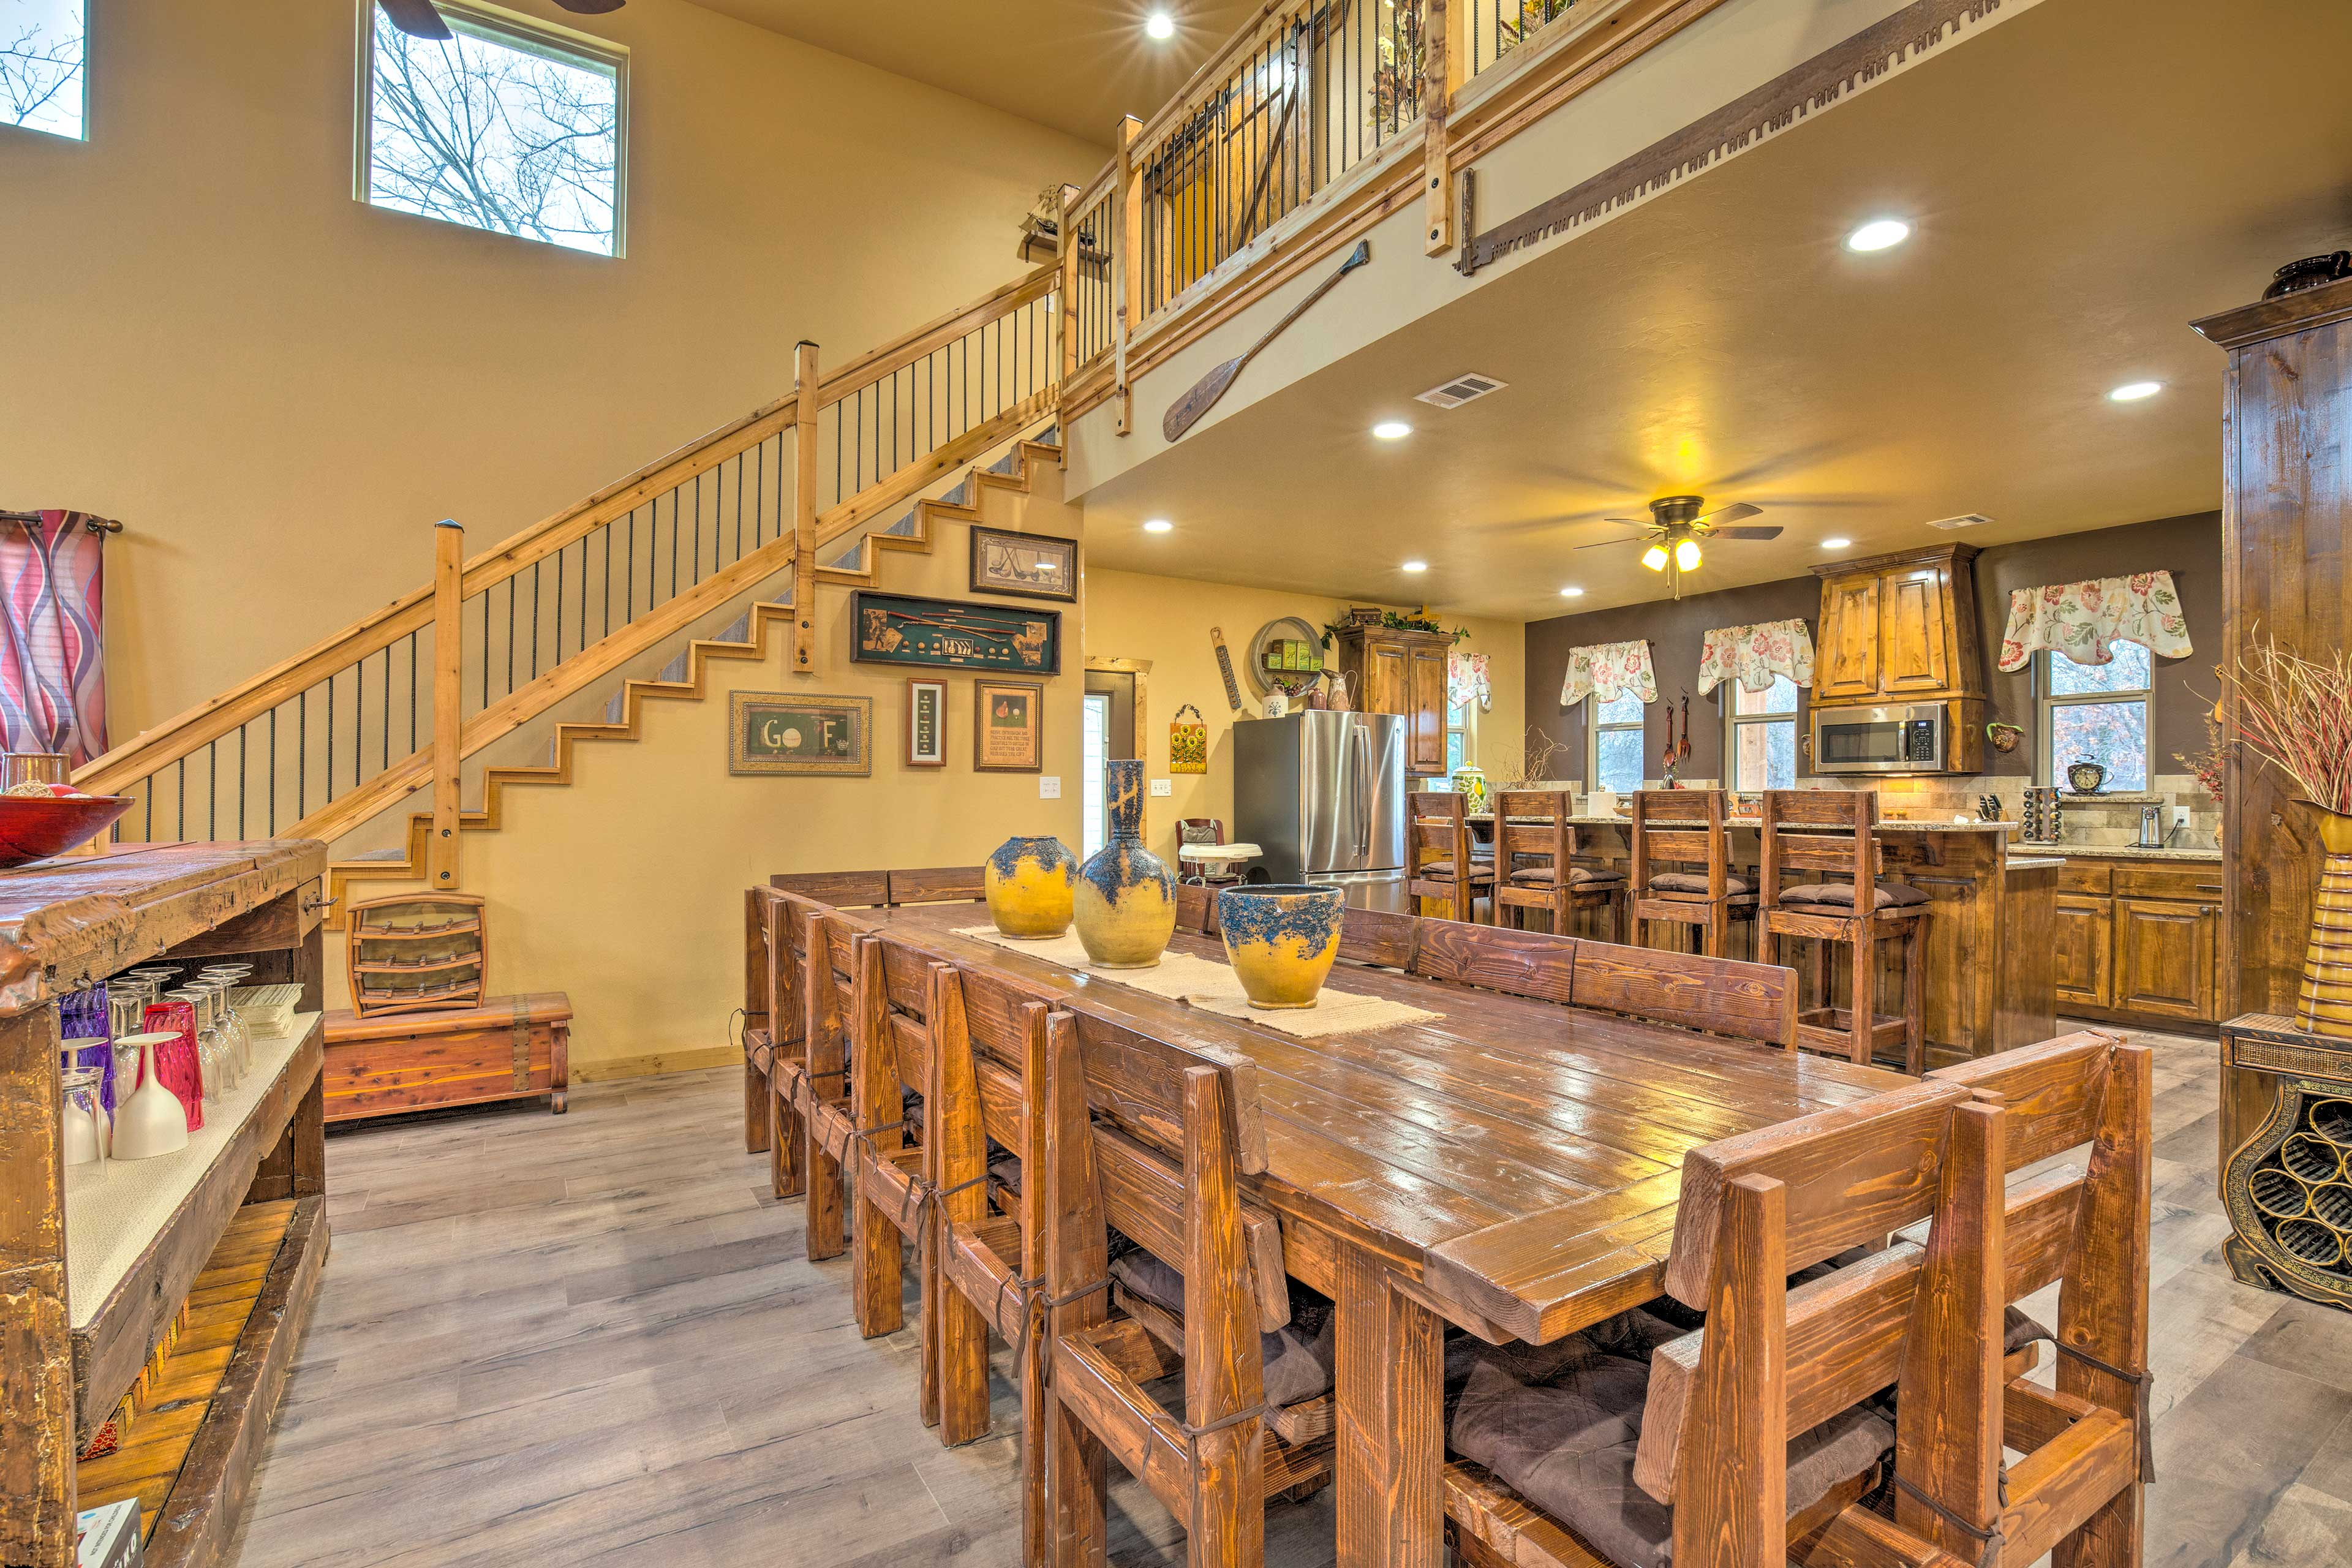 This 6-bedroom, 5.5-bath home is perfect for family getaways.